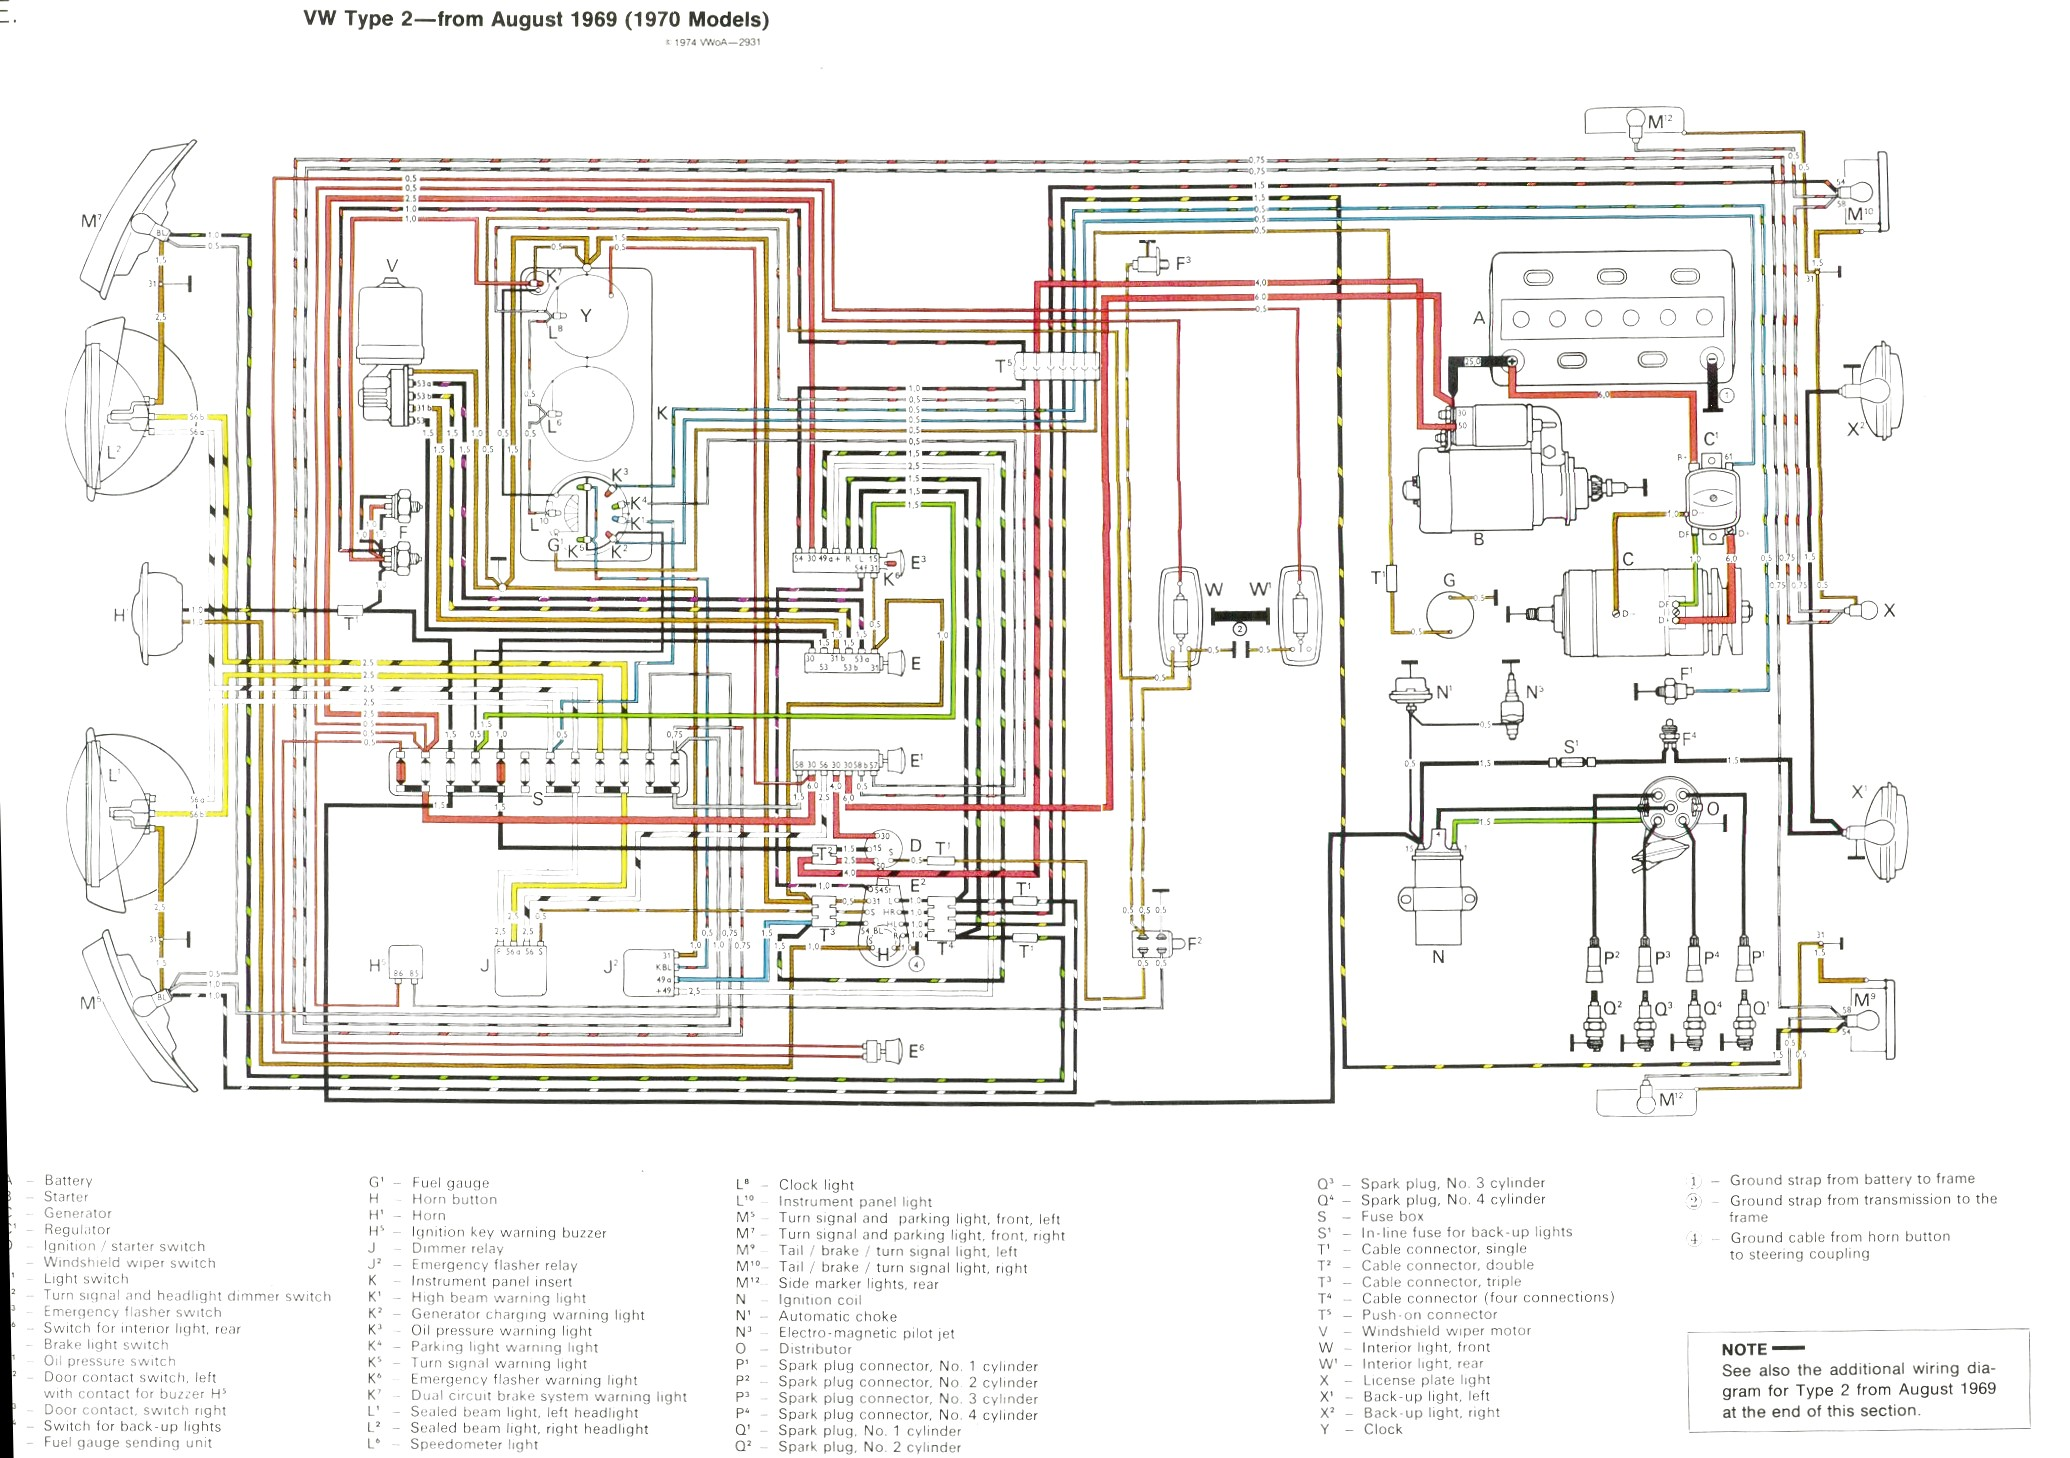 0156911 Power At Light 2way Switch Wiring Diagram Rafmagn ... on vw coil wiring, vw headlight wiring, vw beetle wiring diagram, vw engine wiring, vw fuel tank wiring, vw ignition wiring, vw motor wiring, vw starter wiring, vw distributor wiring, vw alternator wiring, vw regulator wiring, vw brake wiring, vw generator wiring,